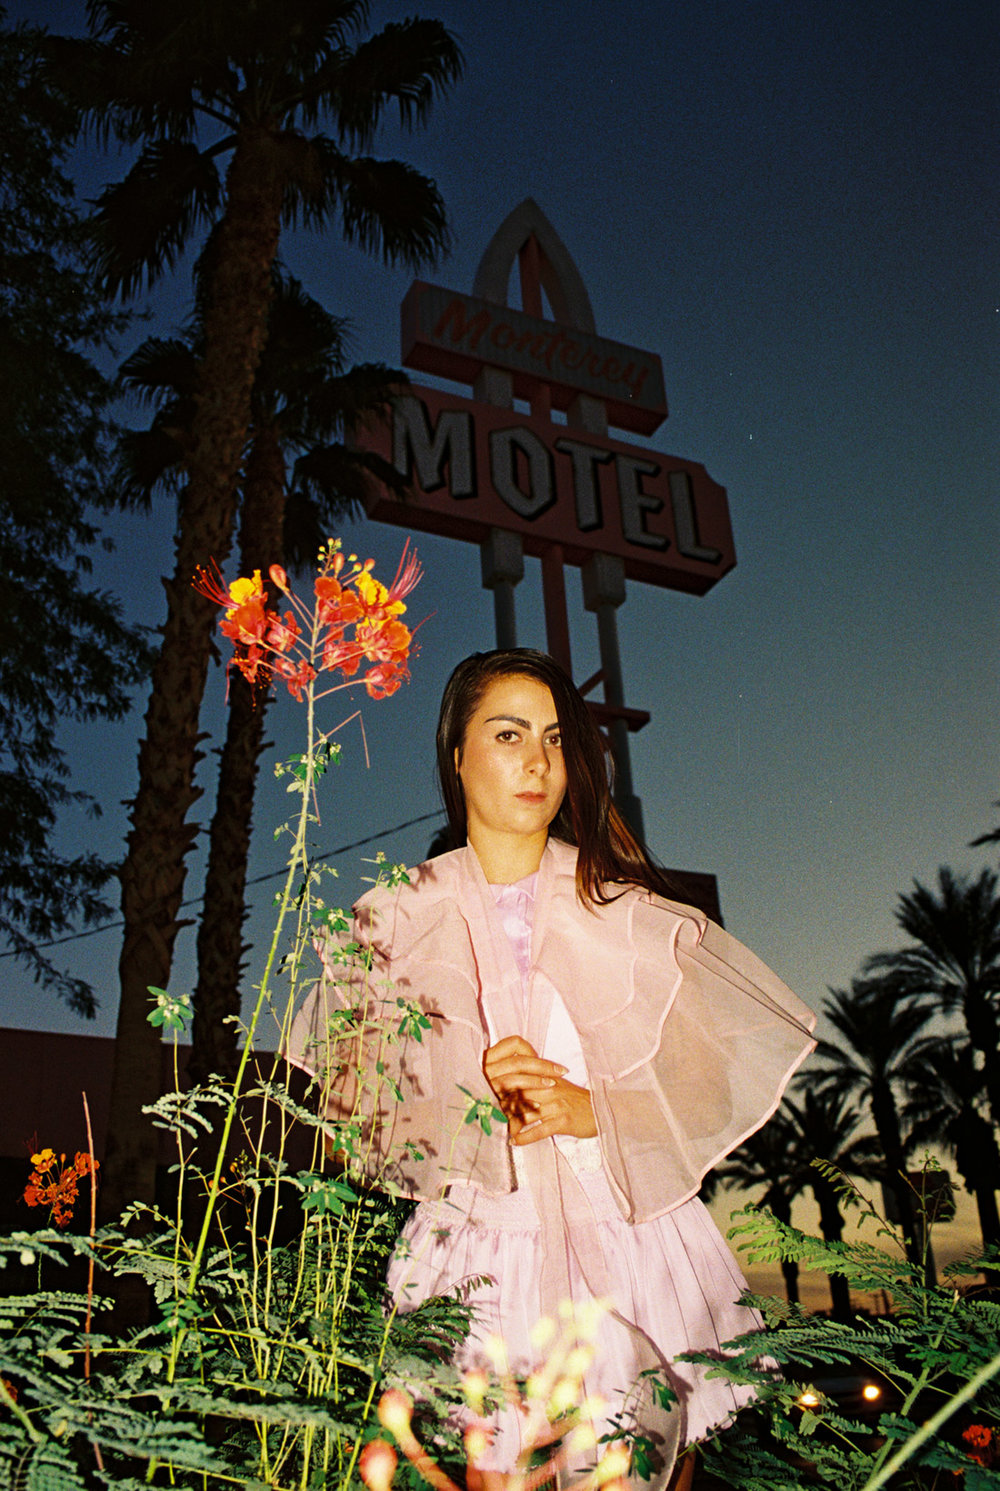 Cara at the Monterery Motel